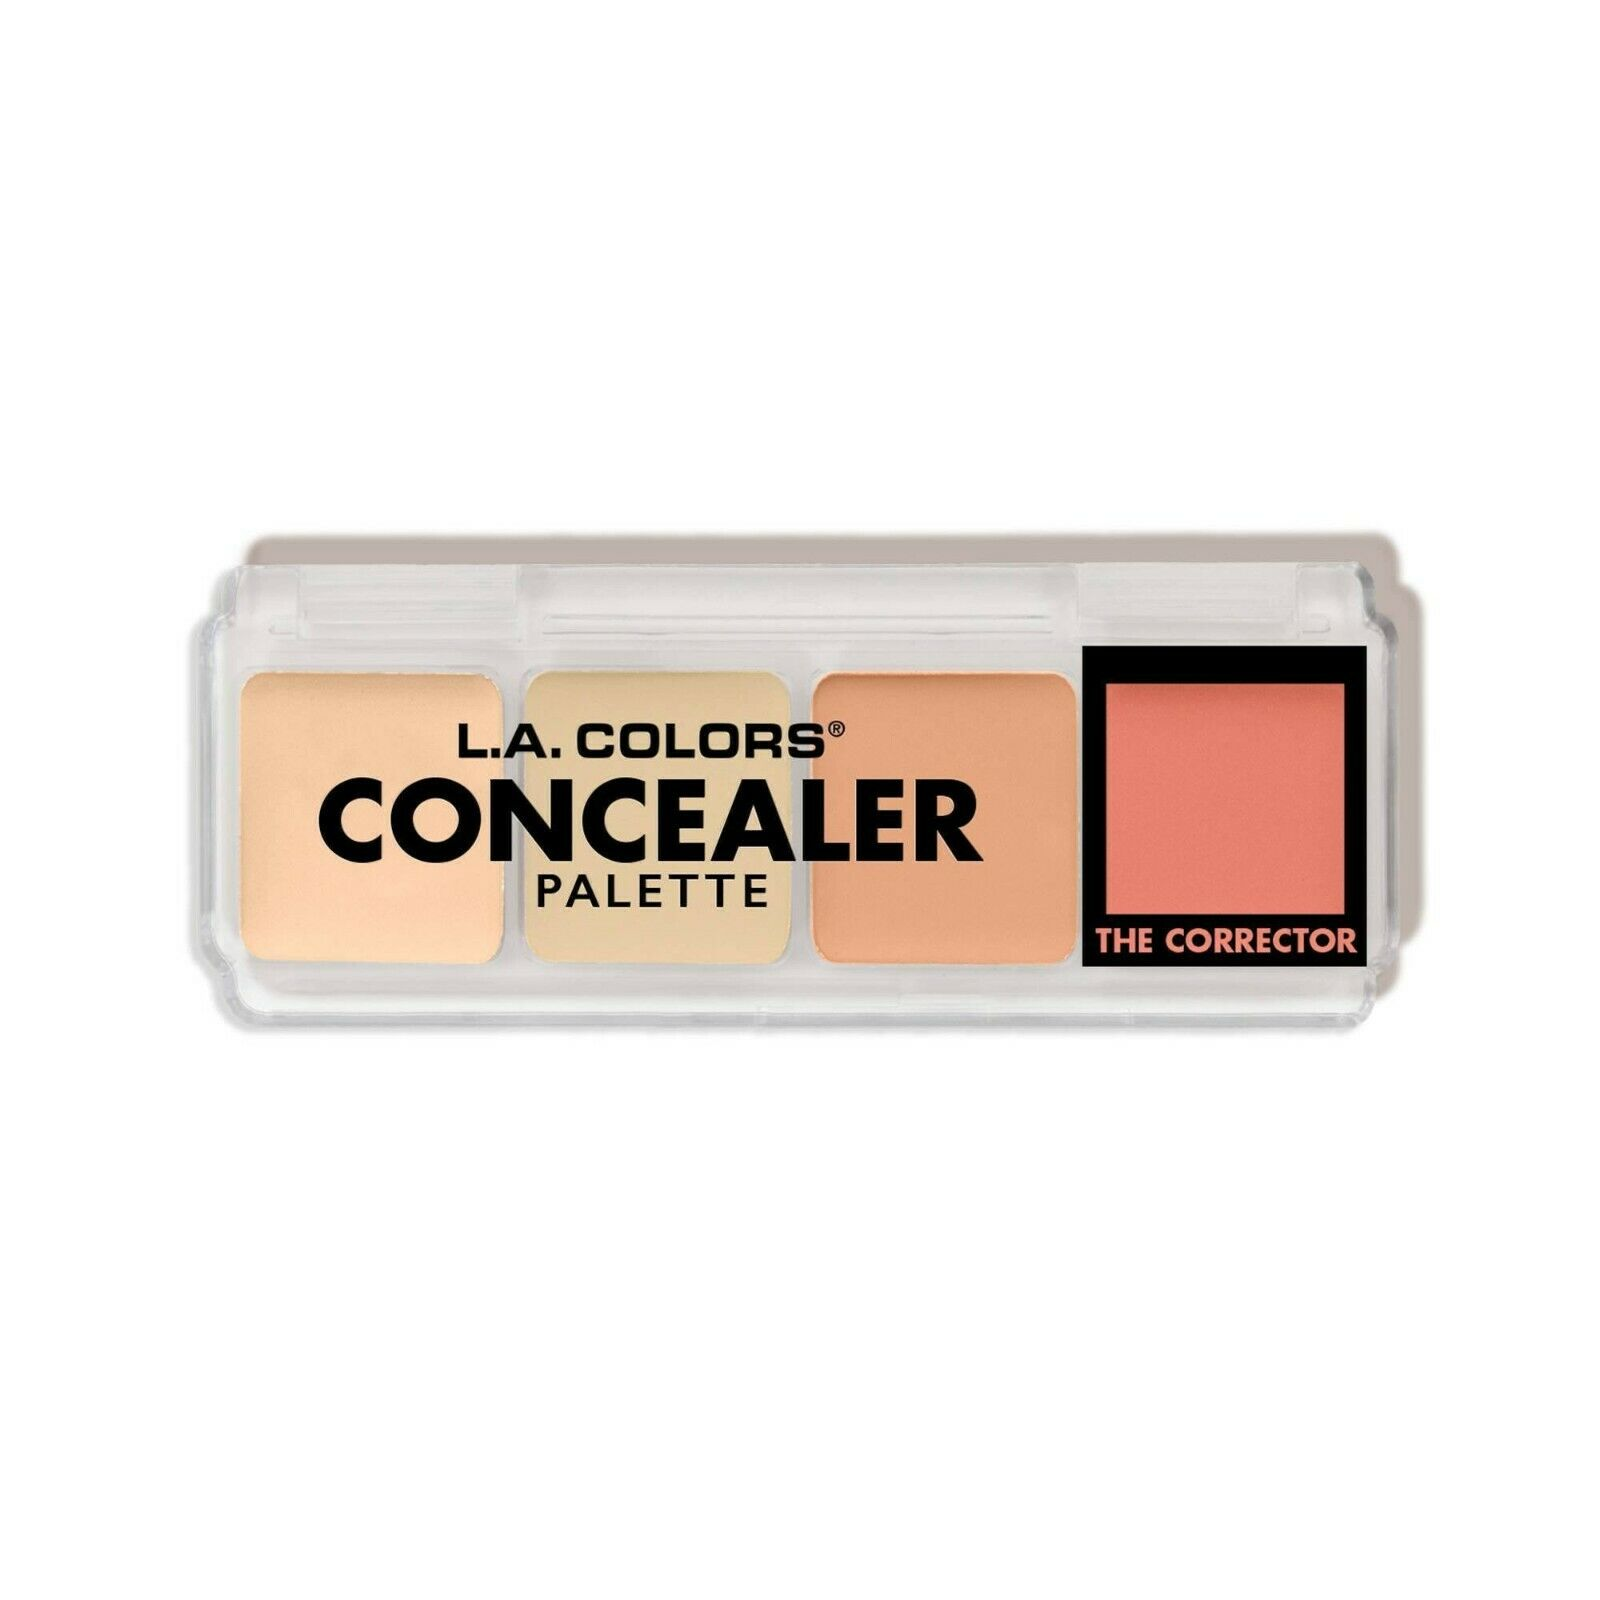 L.A. COLORS Concealer Palette Concealer Corrector CBCP280 MEDIUM .21 Oz. NEW  - $6.87